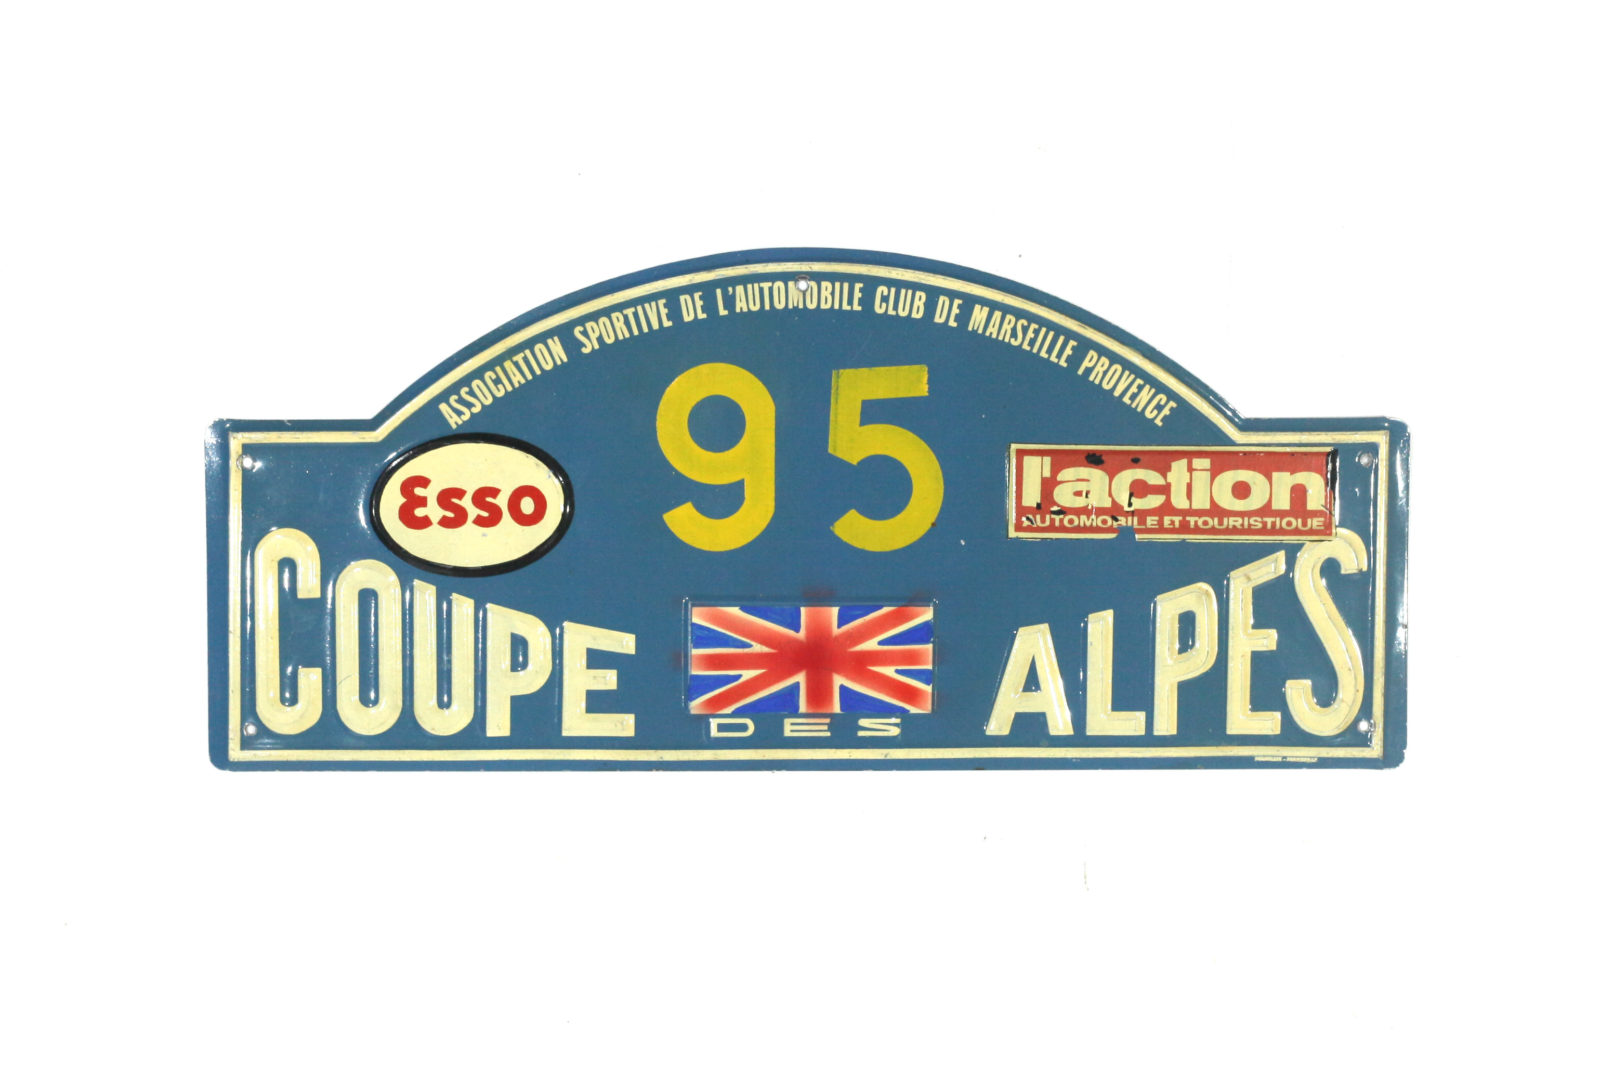 22 Genuine Historic Rally Plates – All For Sale With Prices From £150 to £250